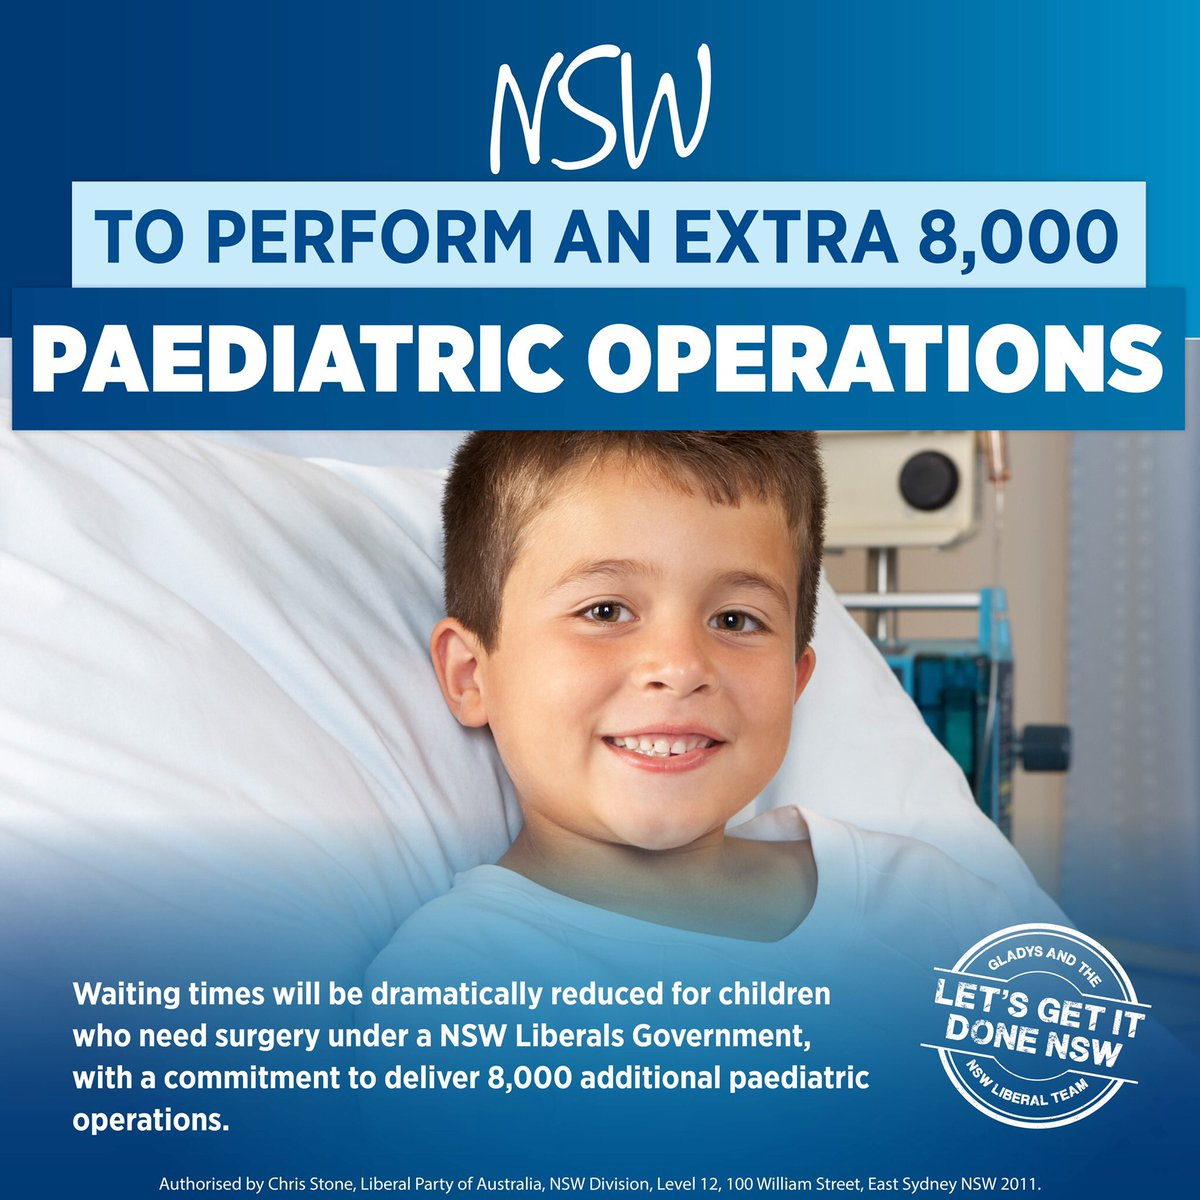 Waiting times will be dramatically reduced for children who need surgery under a NSW Liberals Government, with a commitment to deliver 8,000 additional paediatric operations. #nswpol #LetsGetItDoneNSW